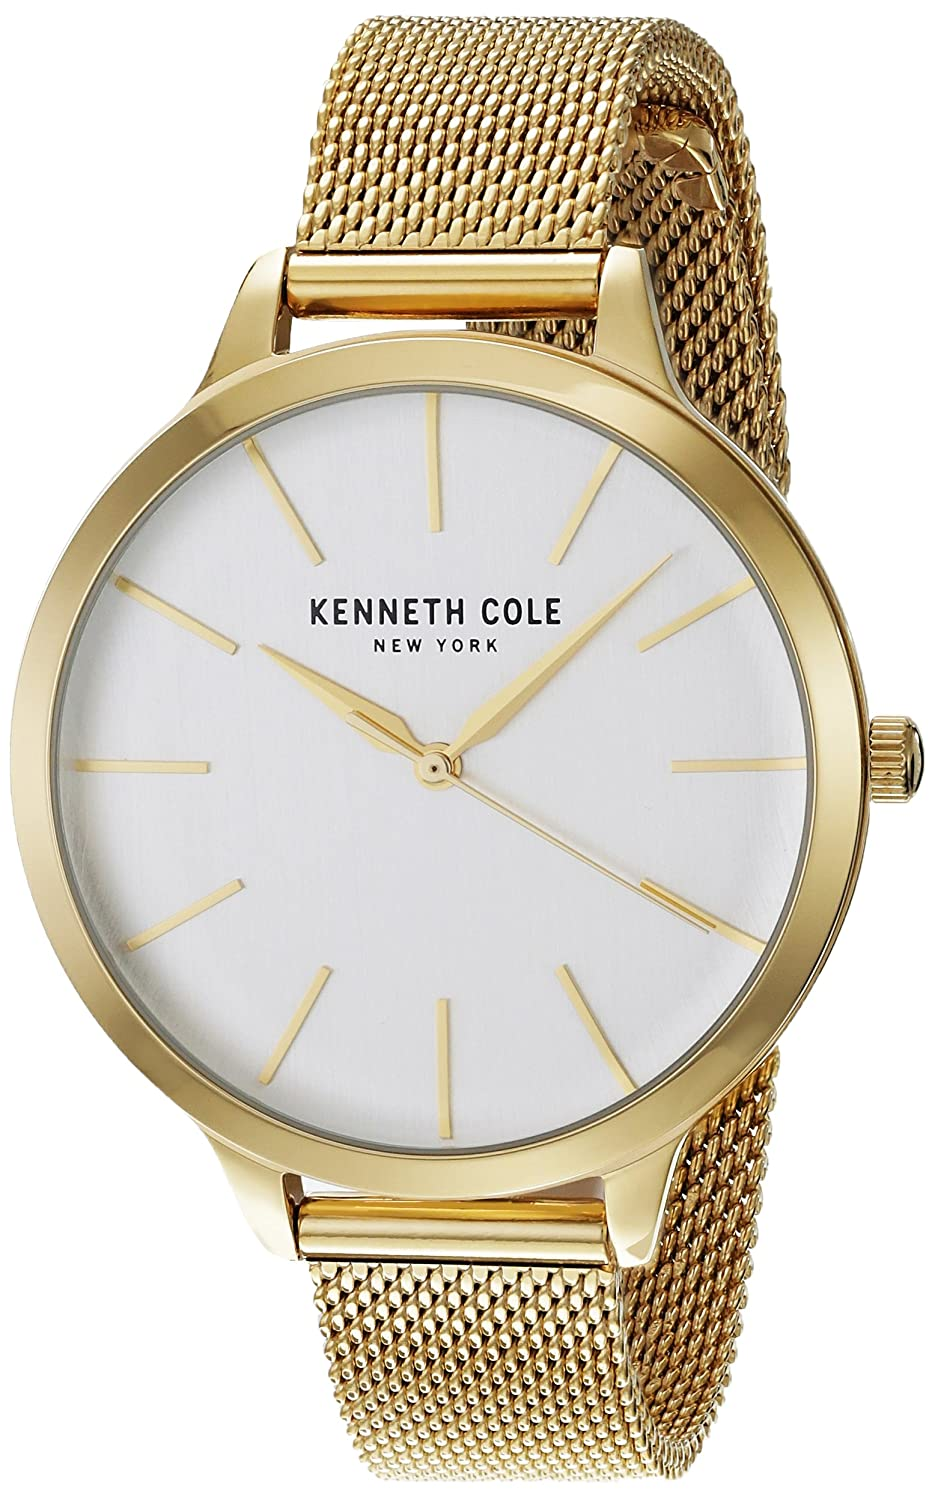 9923dc99da Amazon.com: Kenneth Cole New York Women's 'Classic' Quartz Stainless Steel  Dress Watch, Color:Gold-Toned (Model: KC15056011): Watches